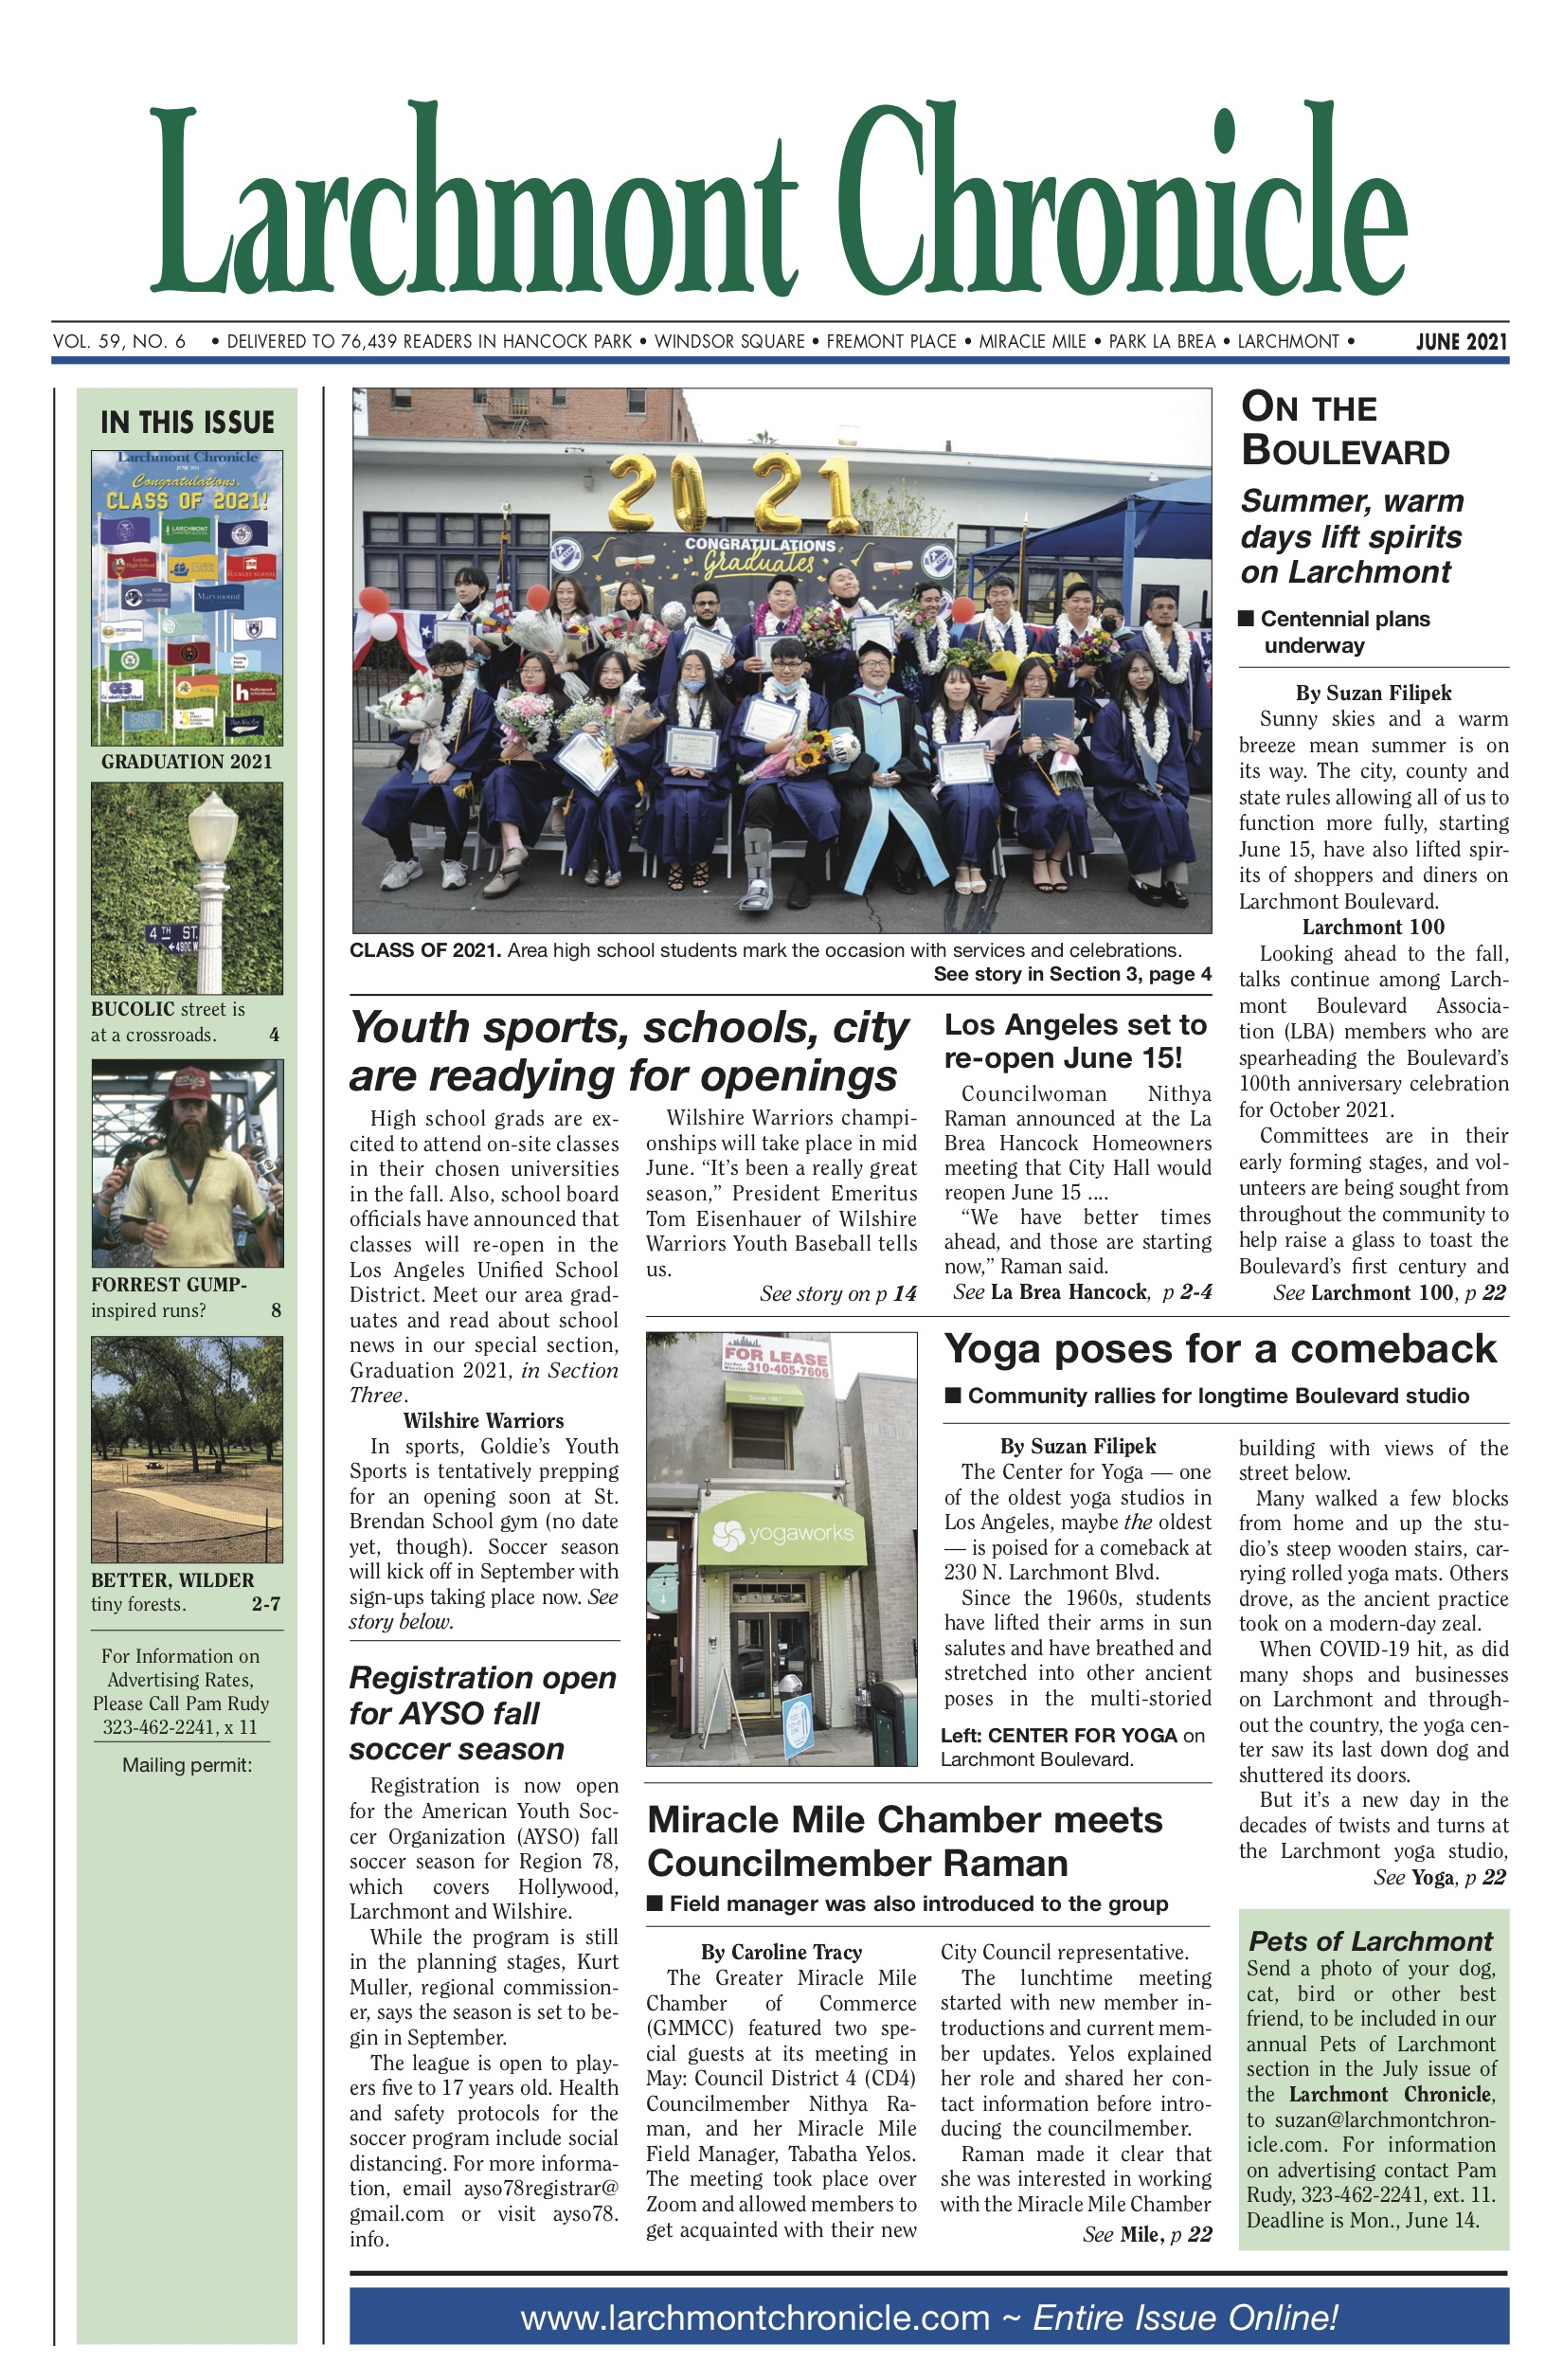 Larchmont Chronicle June 2021 full issue